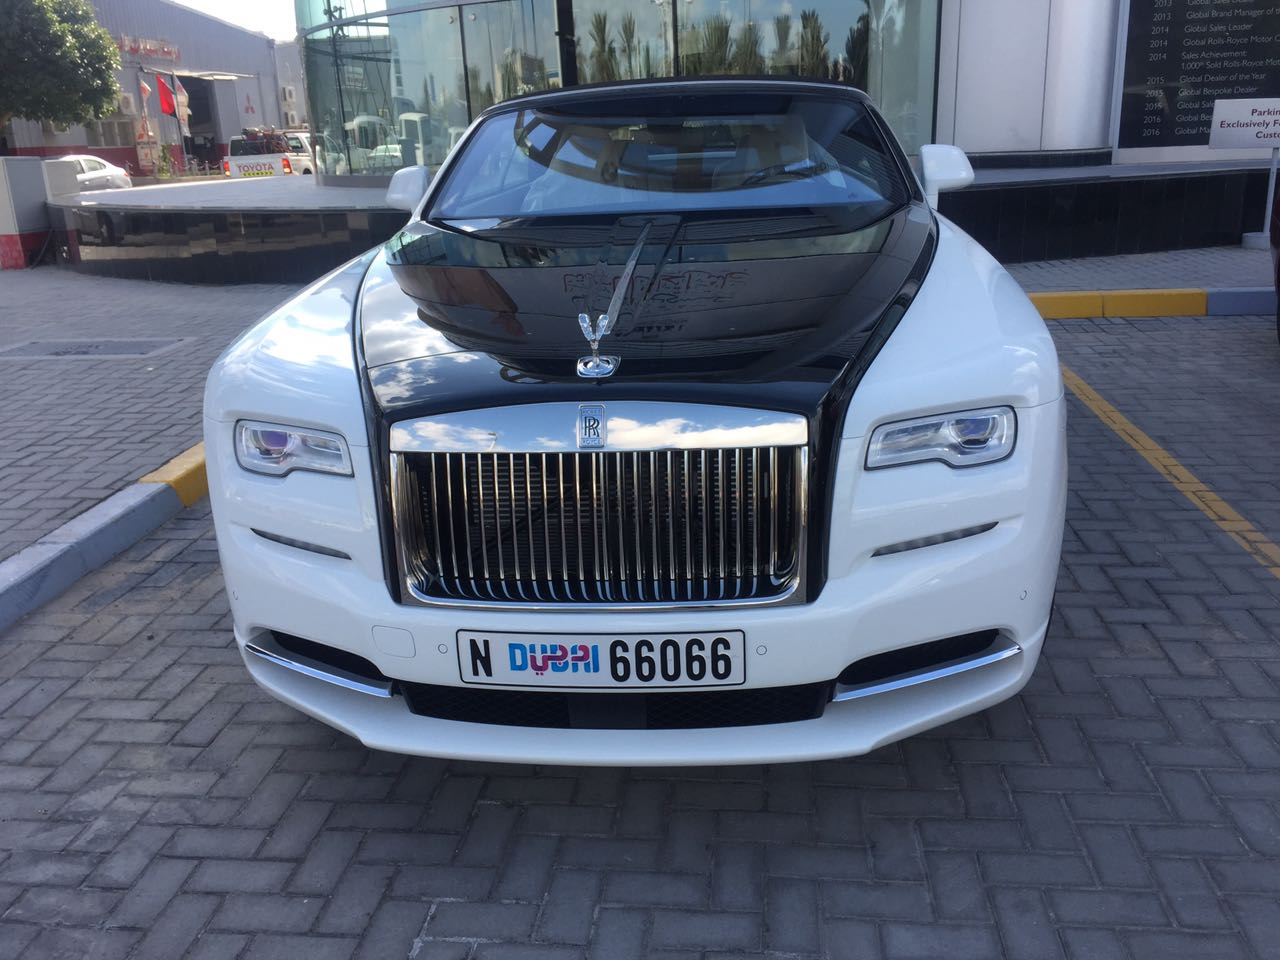 Rent_a_Rolls_Royce_Dawn_in_Dubai_01